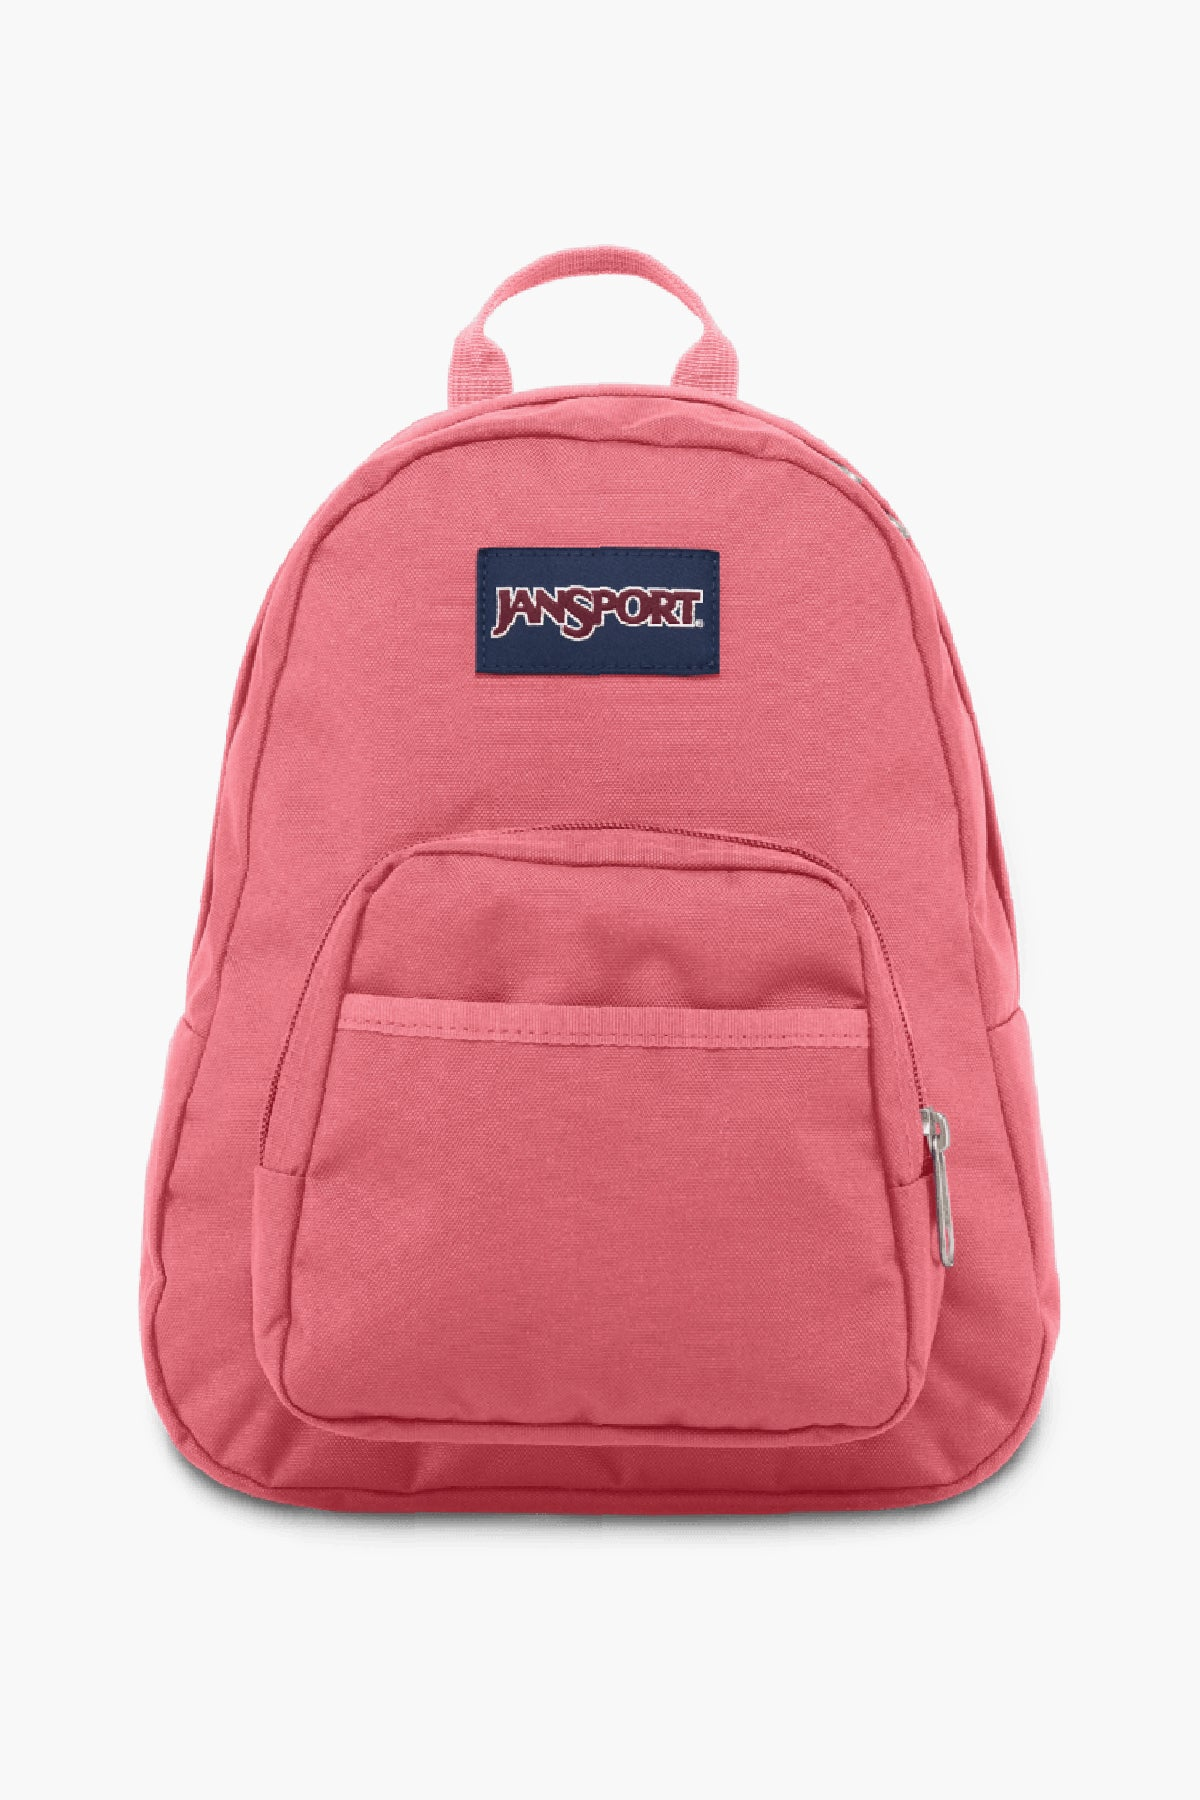 JanSport Half Pint Kids Backpack - Strawberry